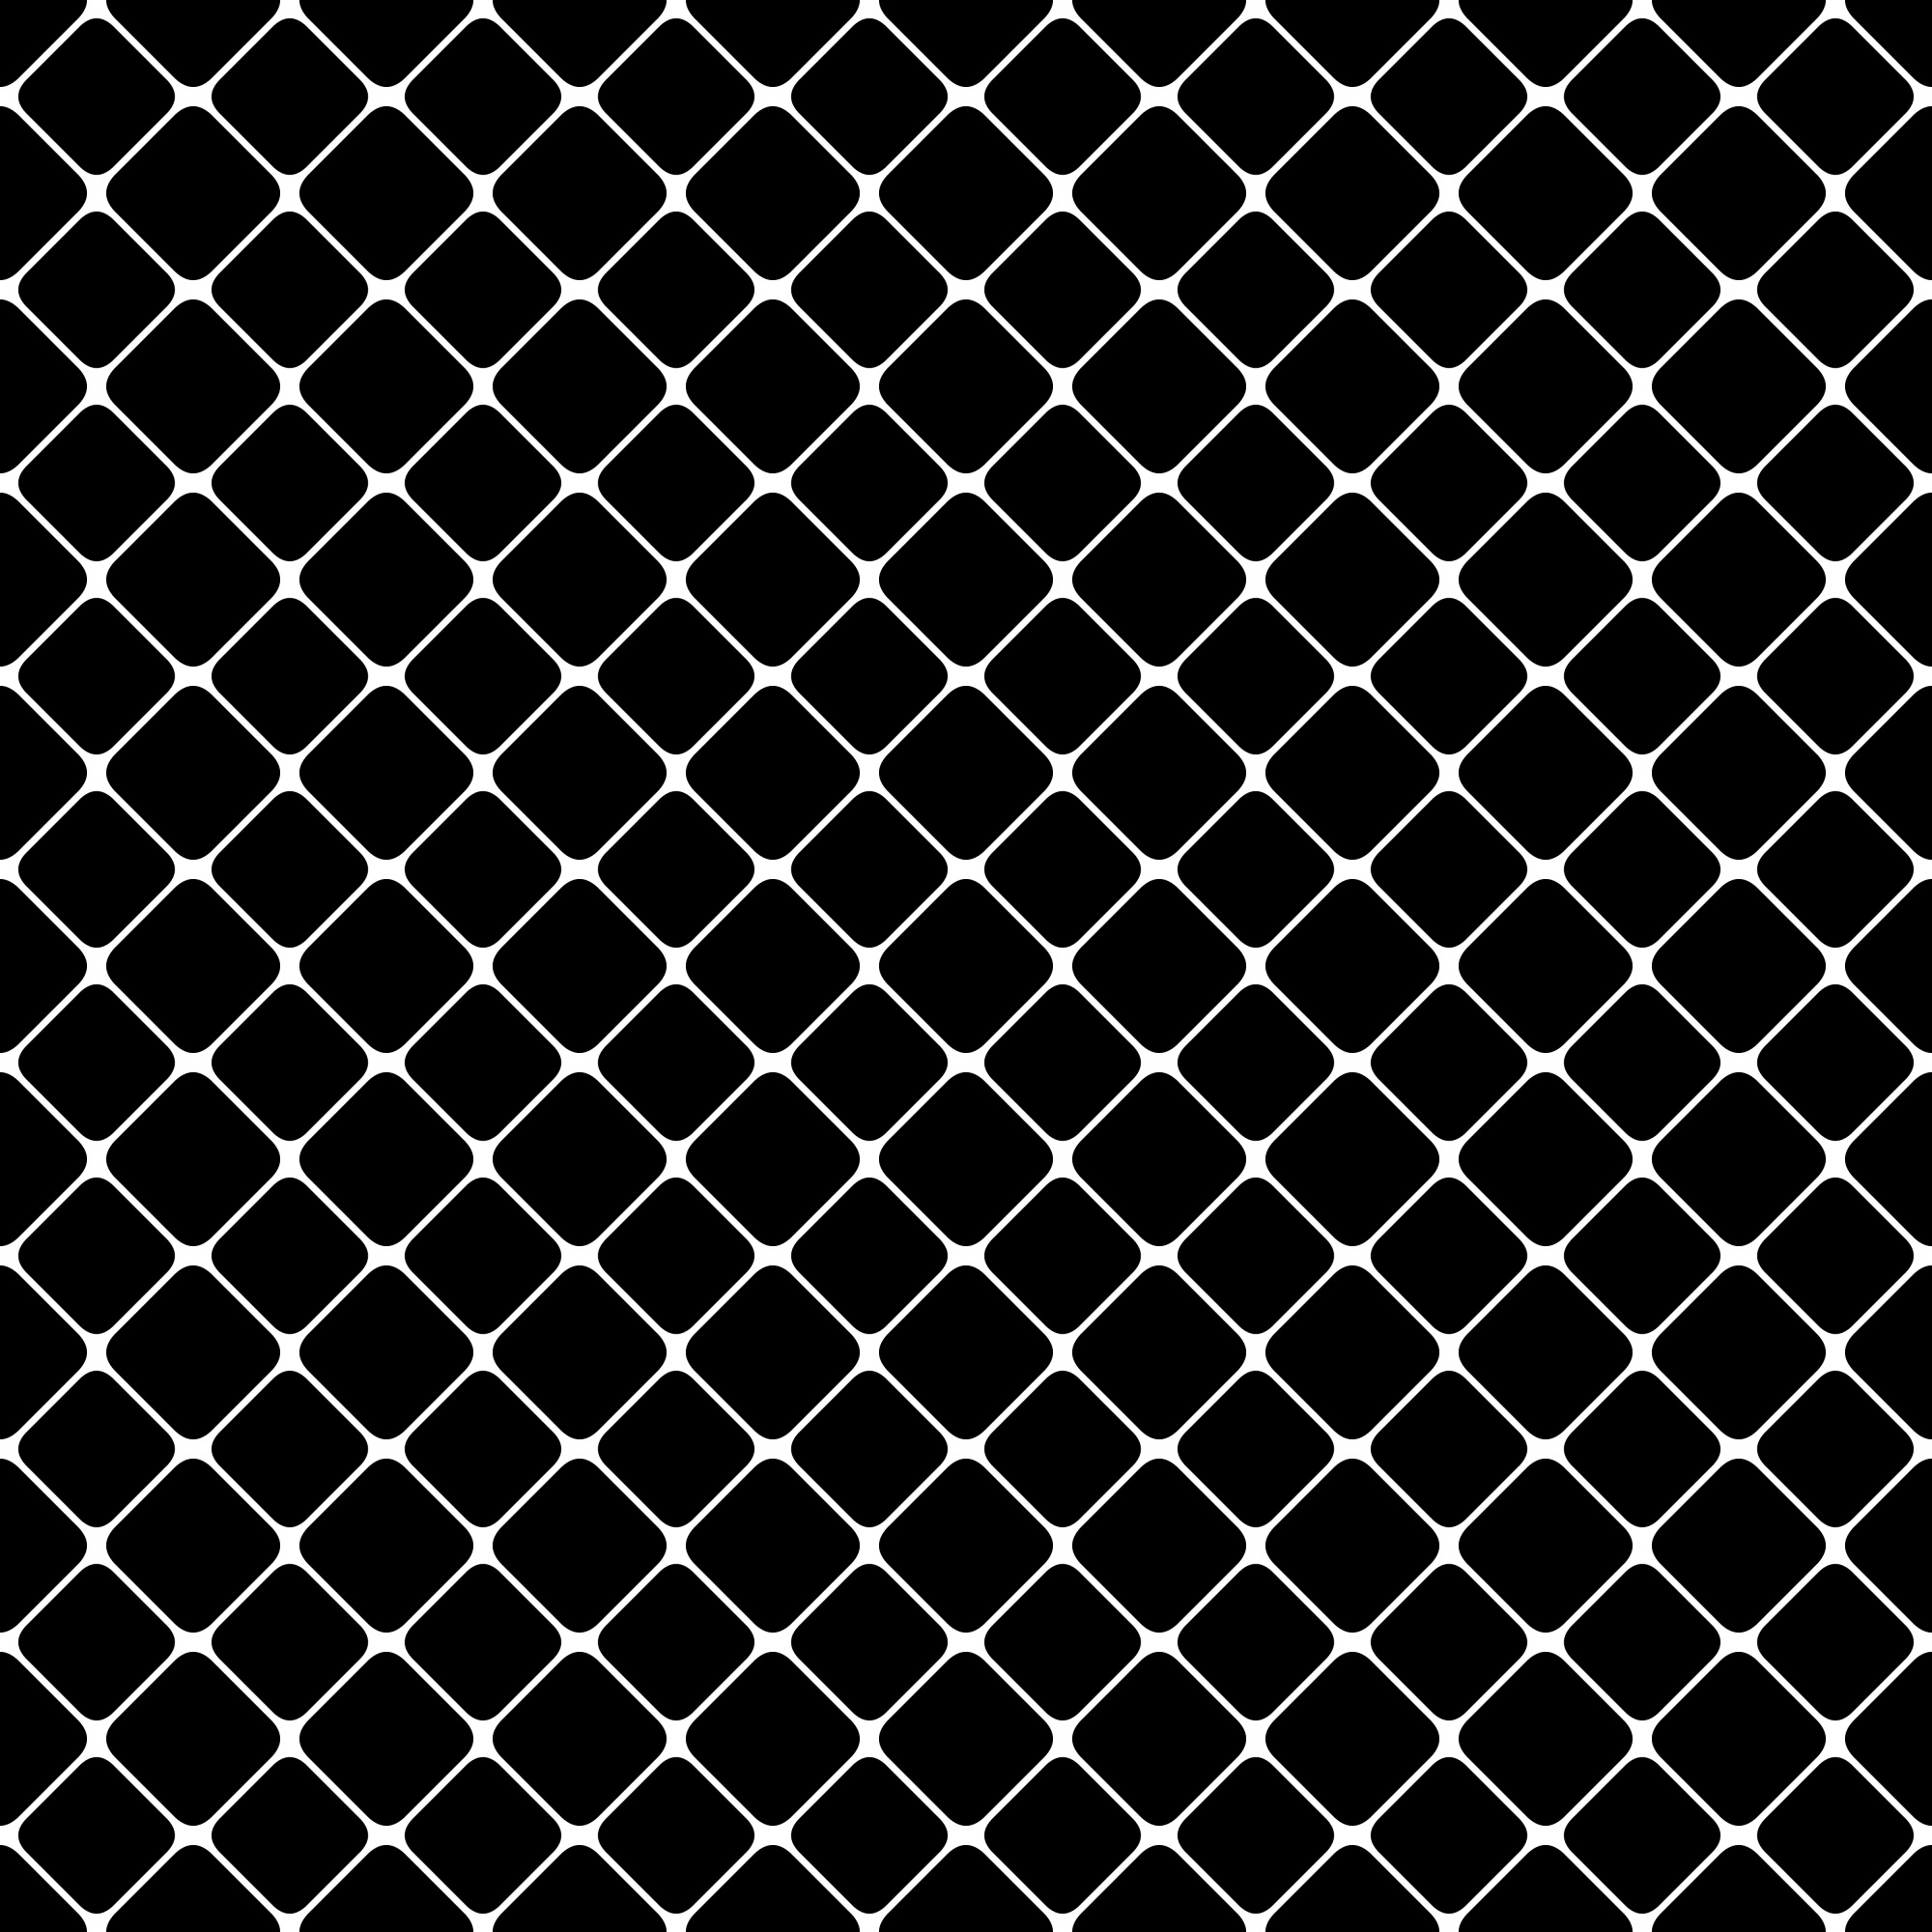 Seamless abstract monochrome square pattern - vector background design from diagonal rounded squares